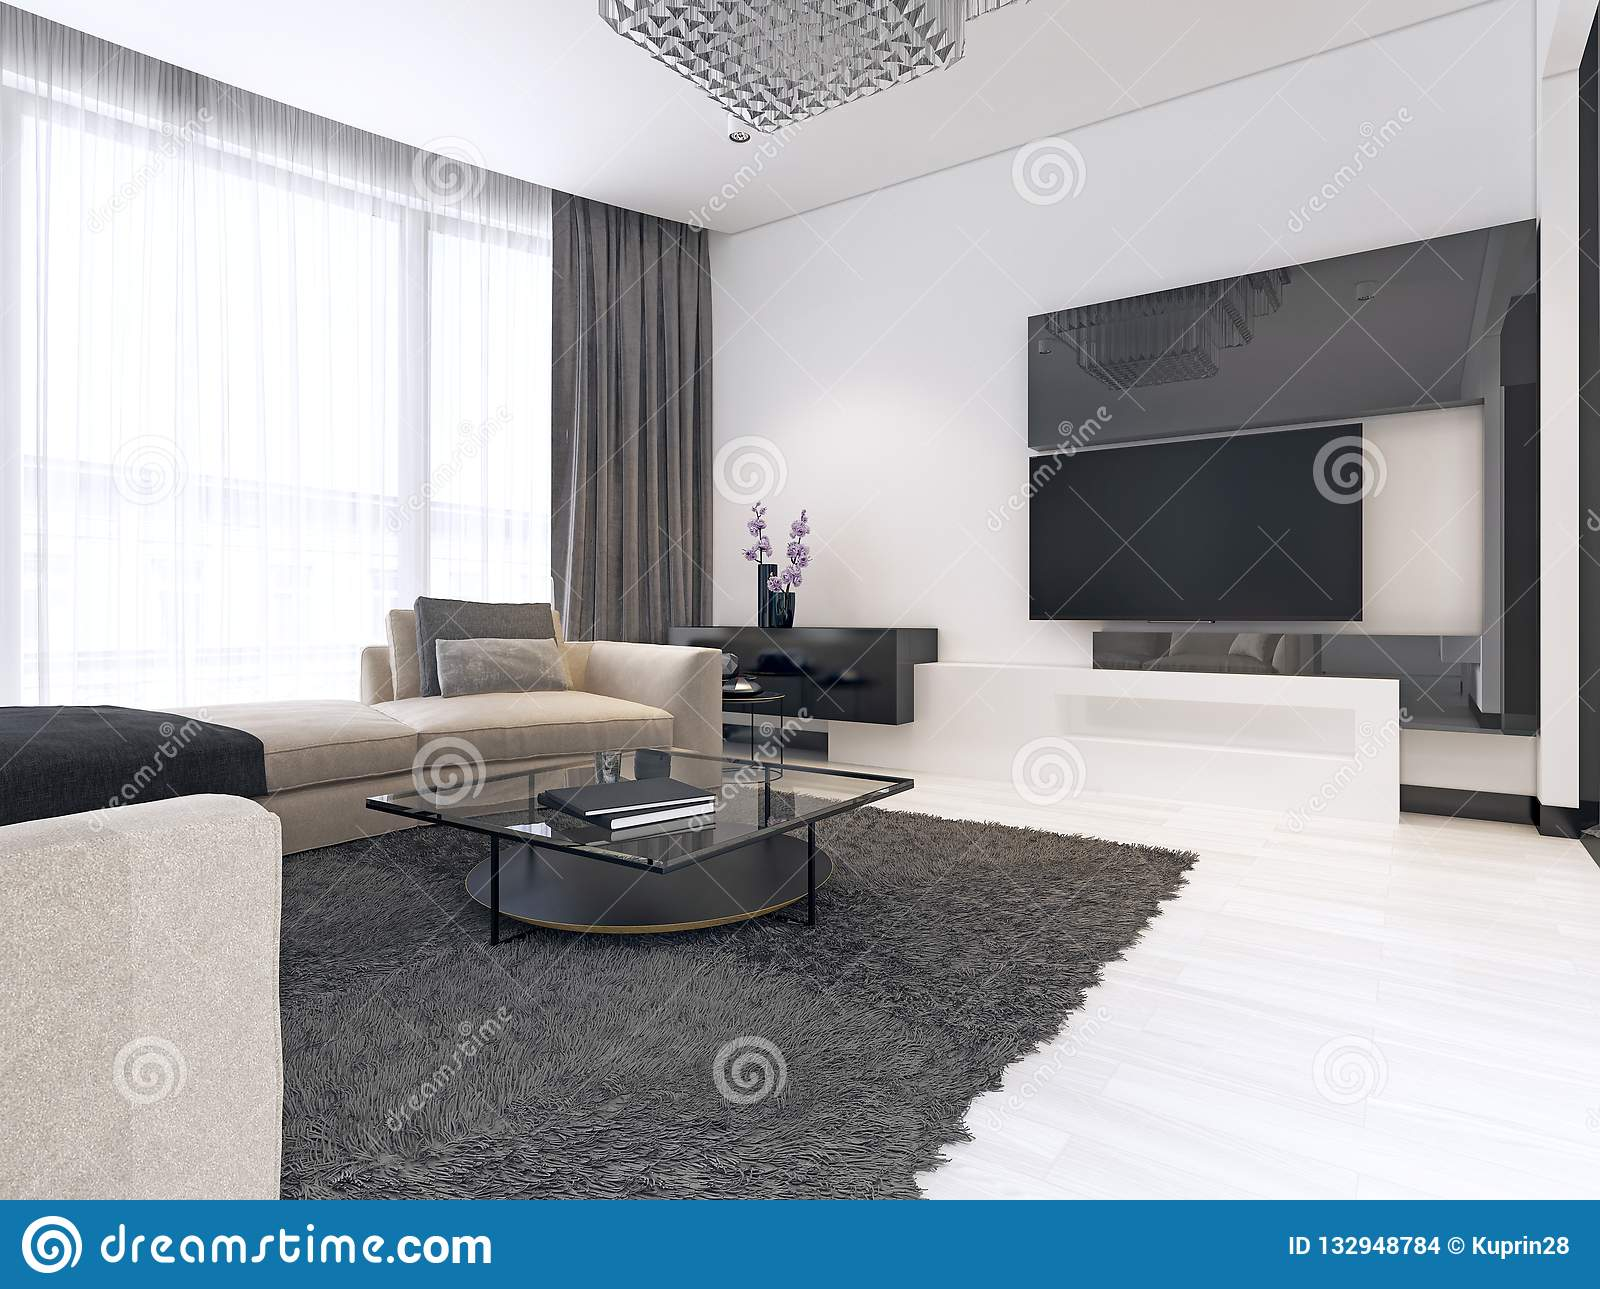 Decoration And Design Of Contemporary Living Room Stock